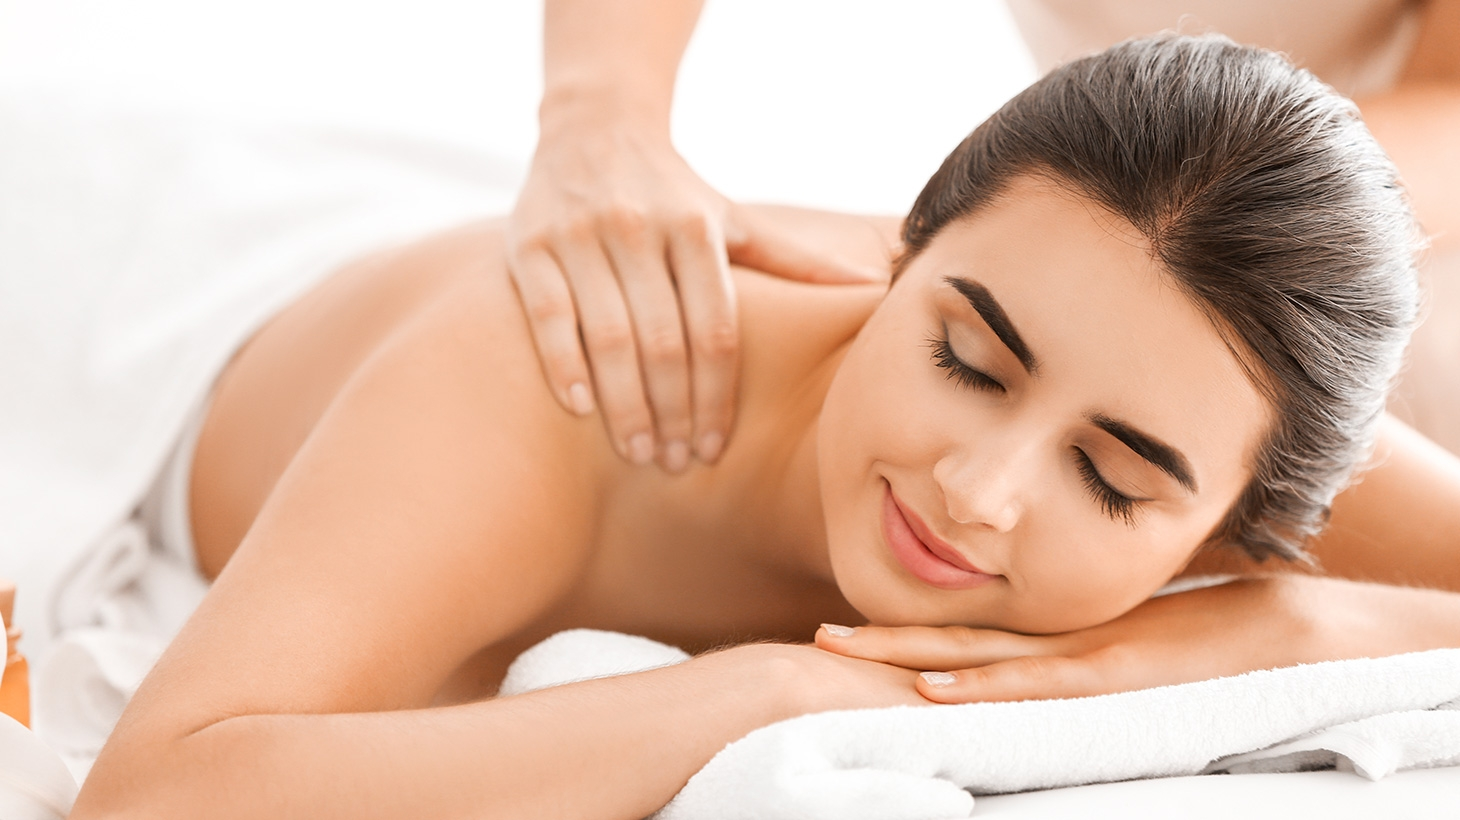 Woman laying on massage bed receiving back massage